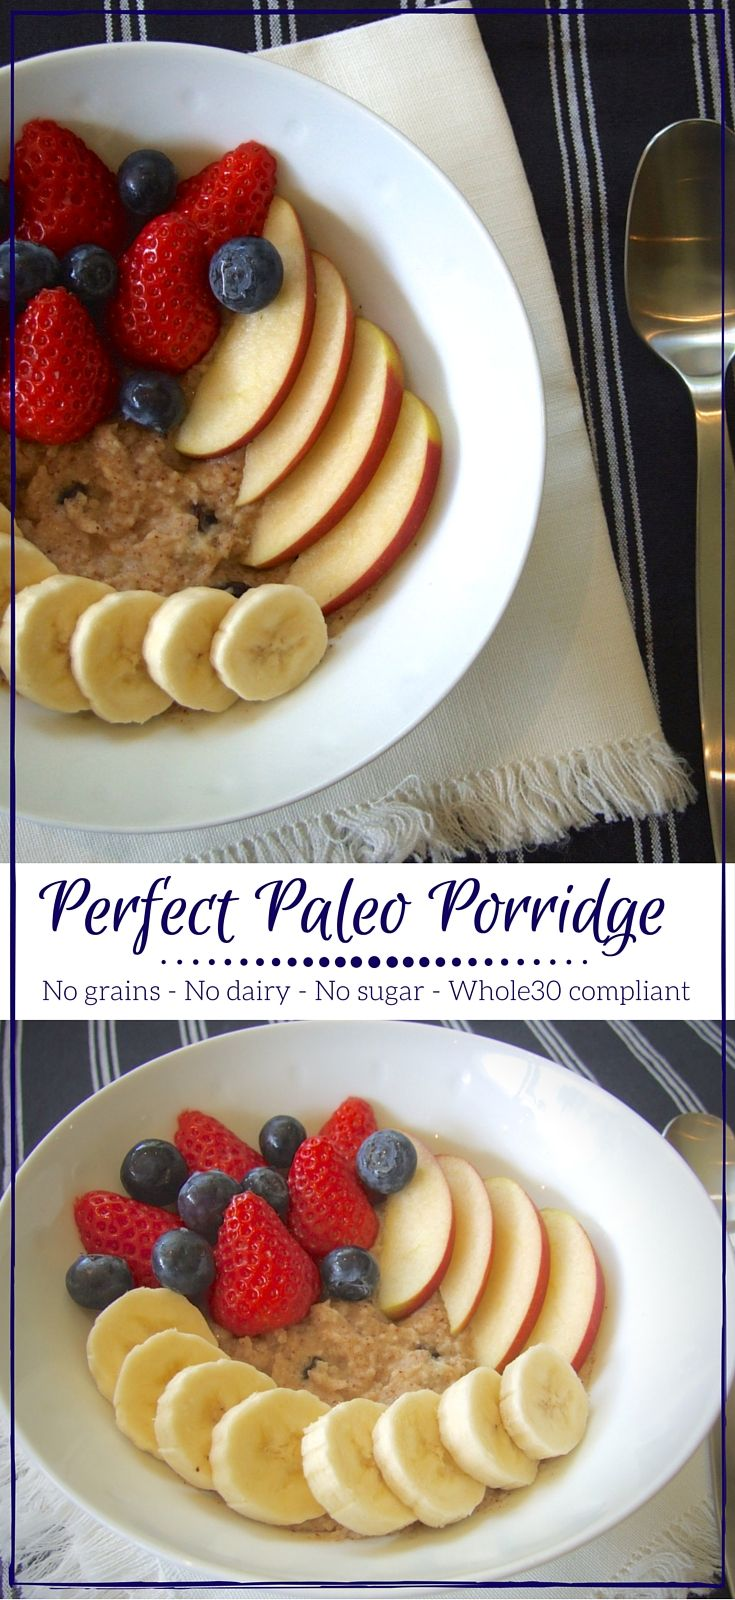 A delicious paleo & Whole30 start to the day - no grains, dairy or refined sugar in this filling hot breakfast bowl. Top with fruit for extra get-up-and-go!